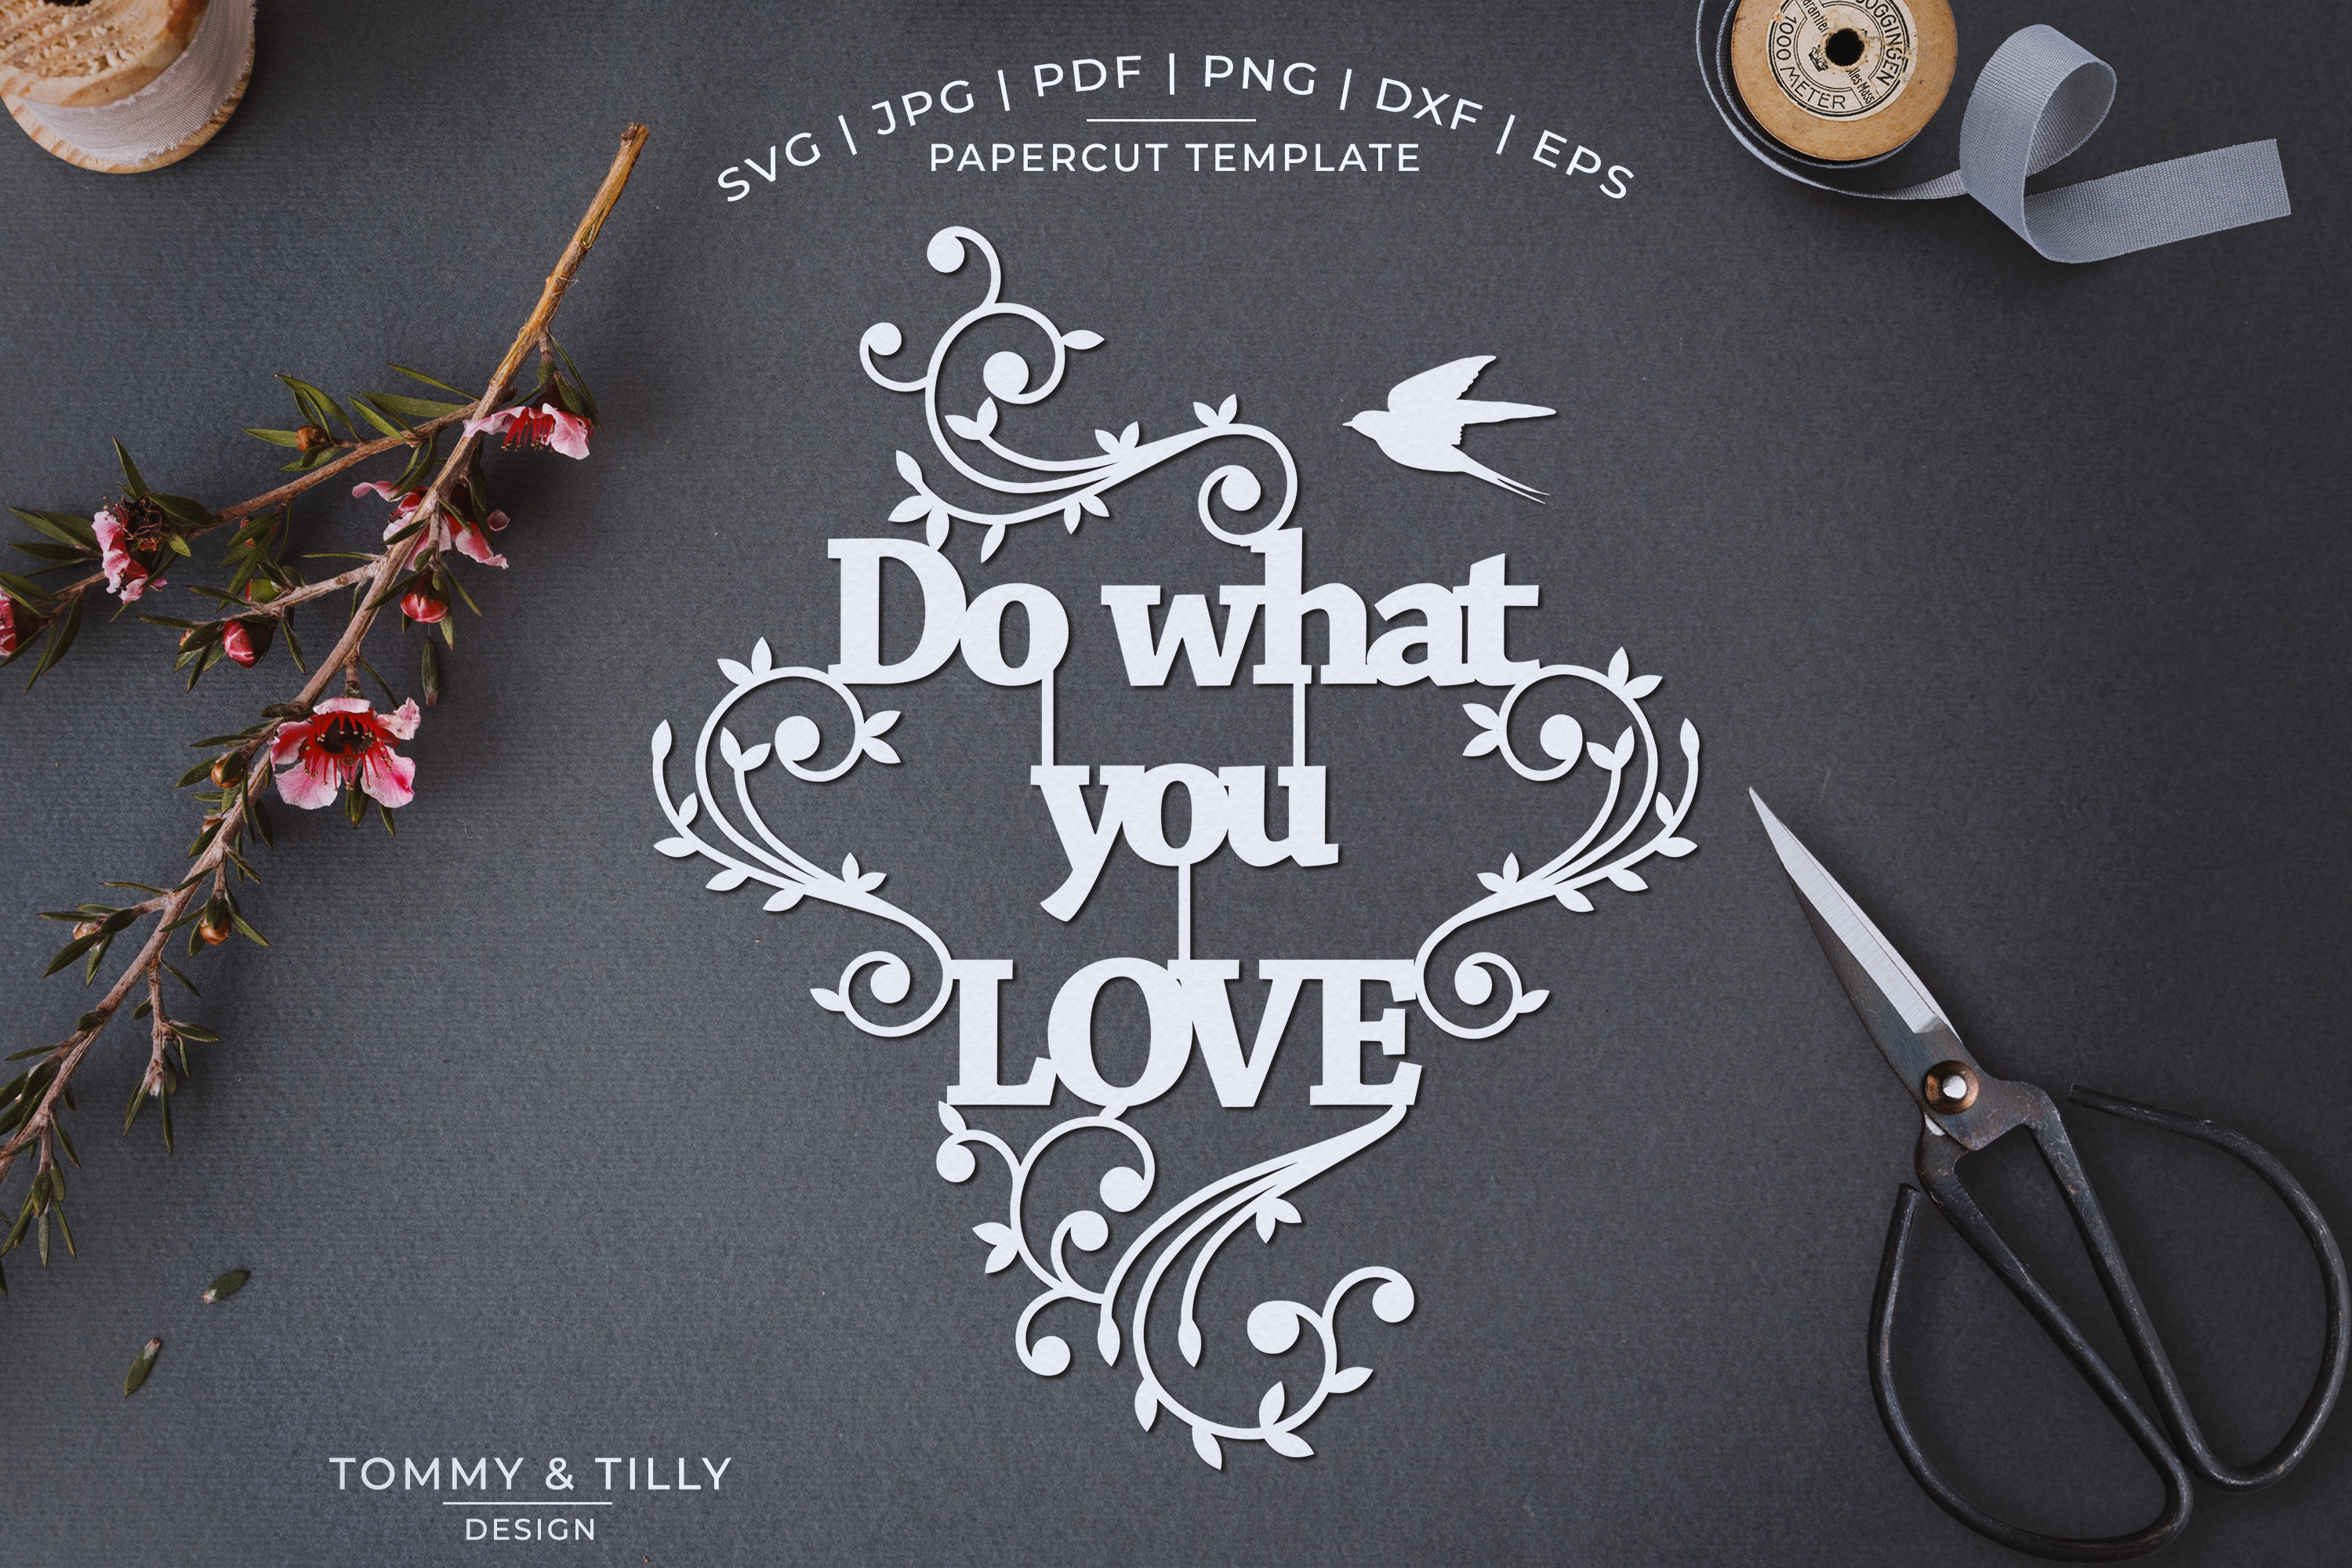 Do what you love - Papercut SVG EPS DXF PNG PDF example image 1